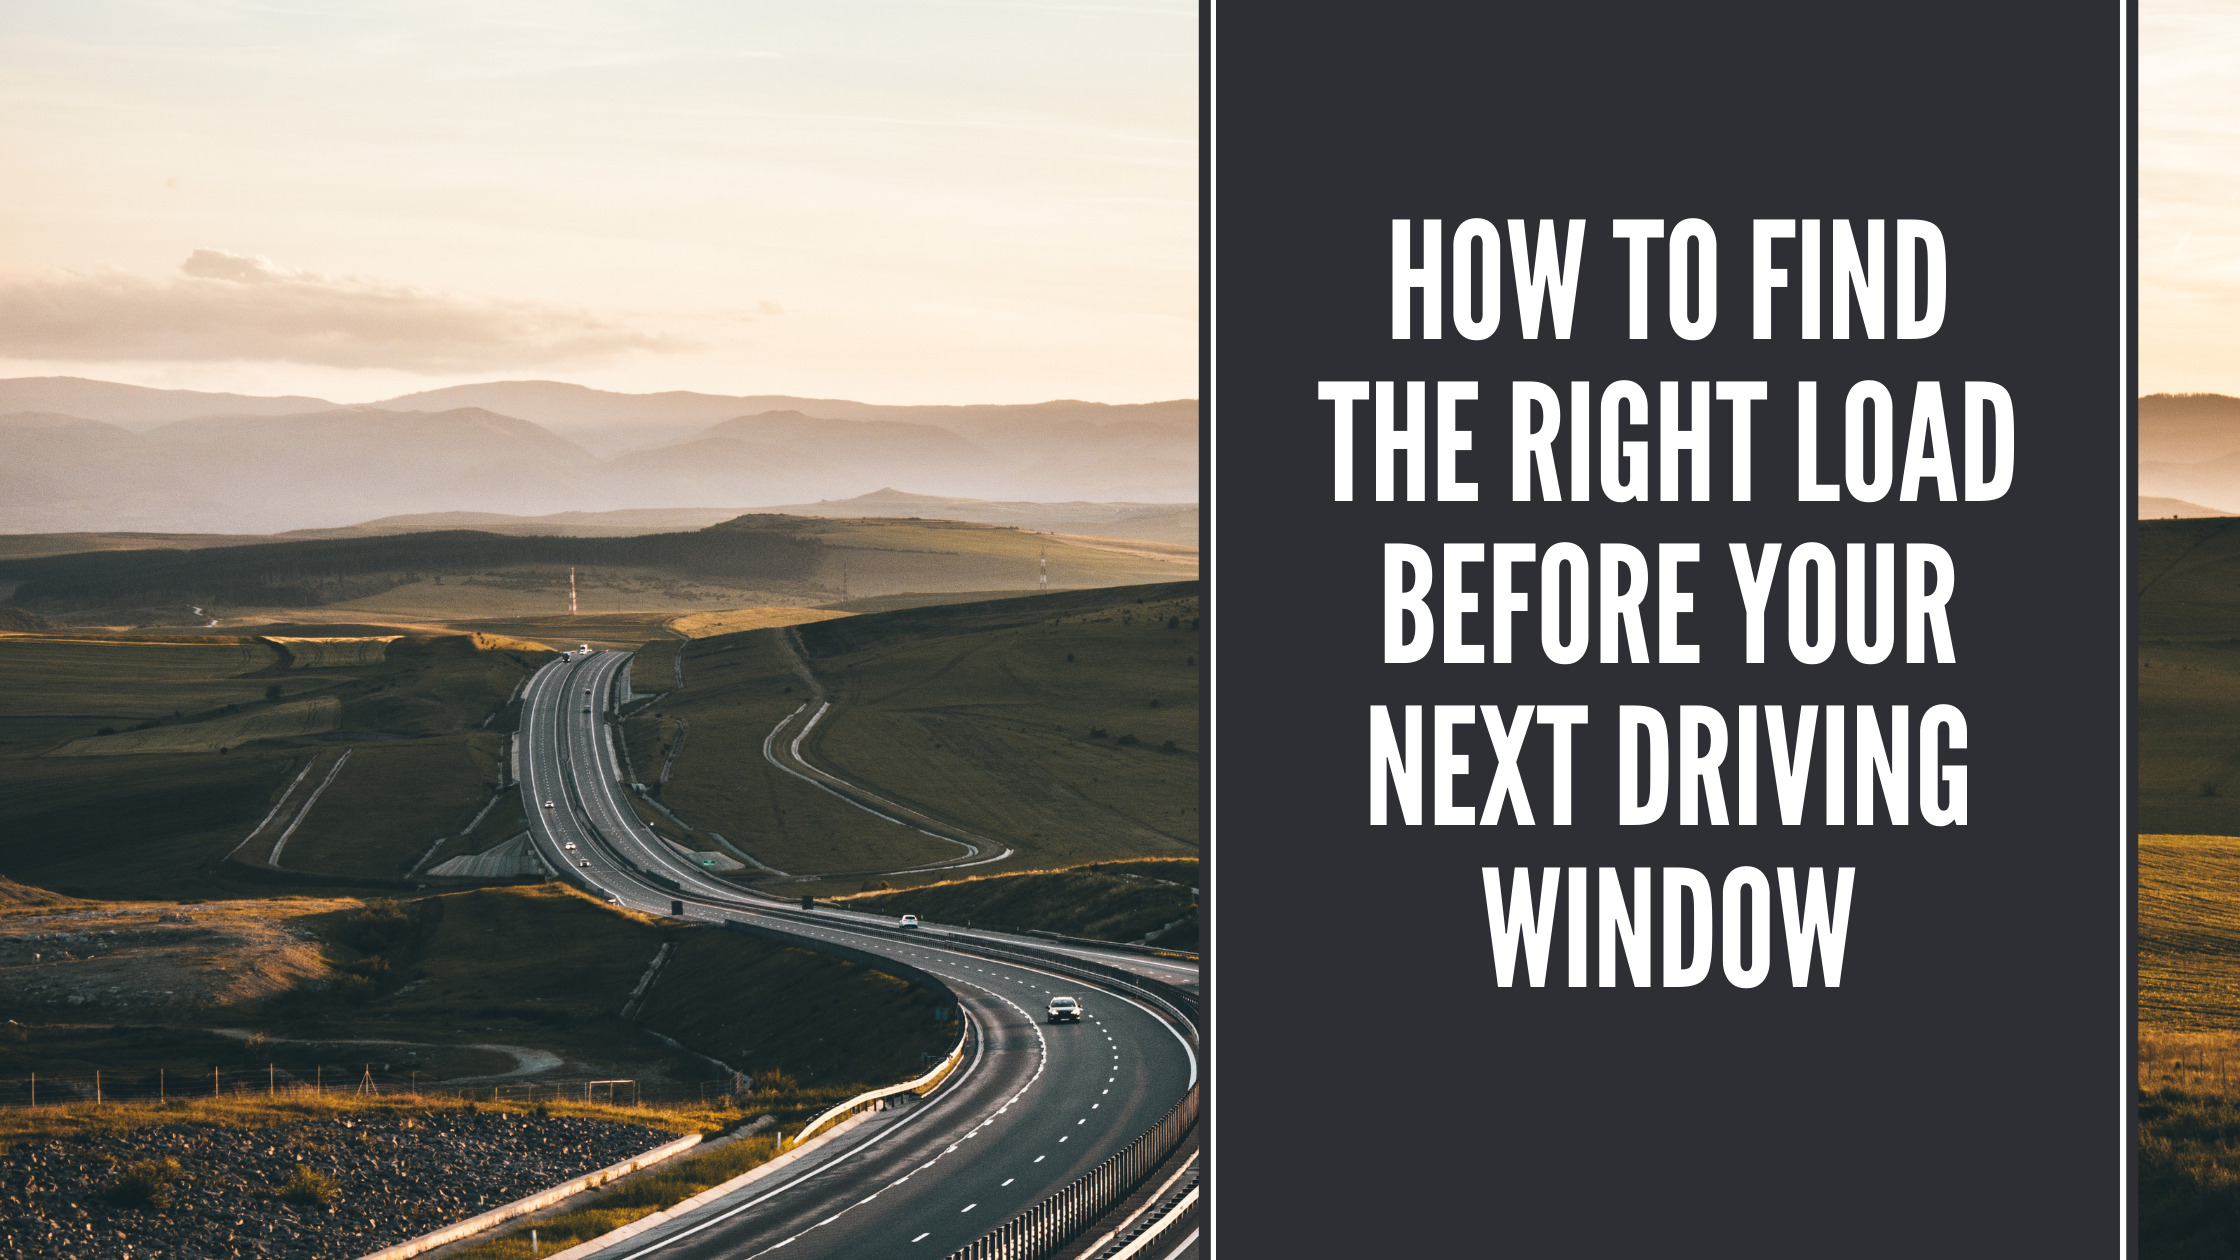 How to find the right load before your next driving window